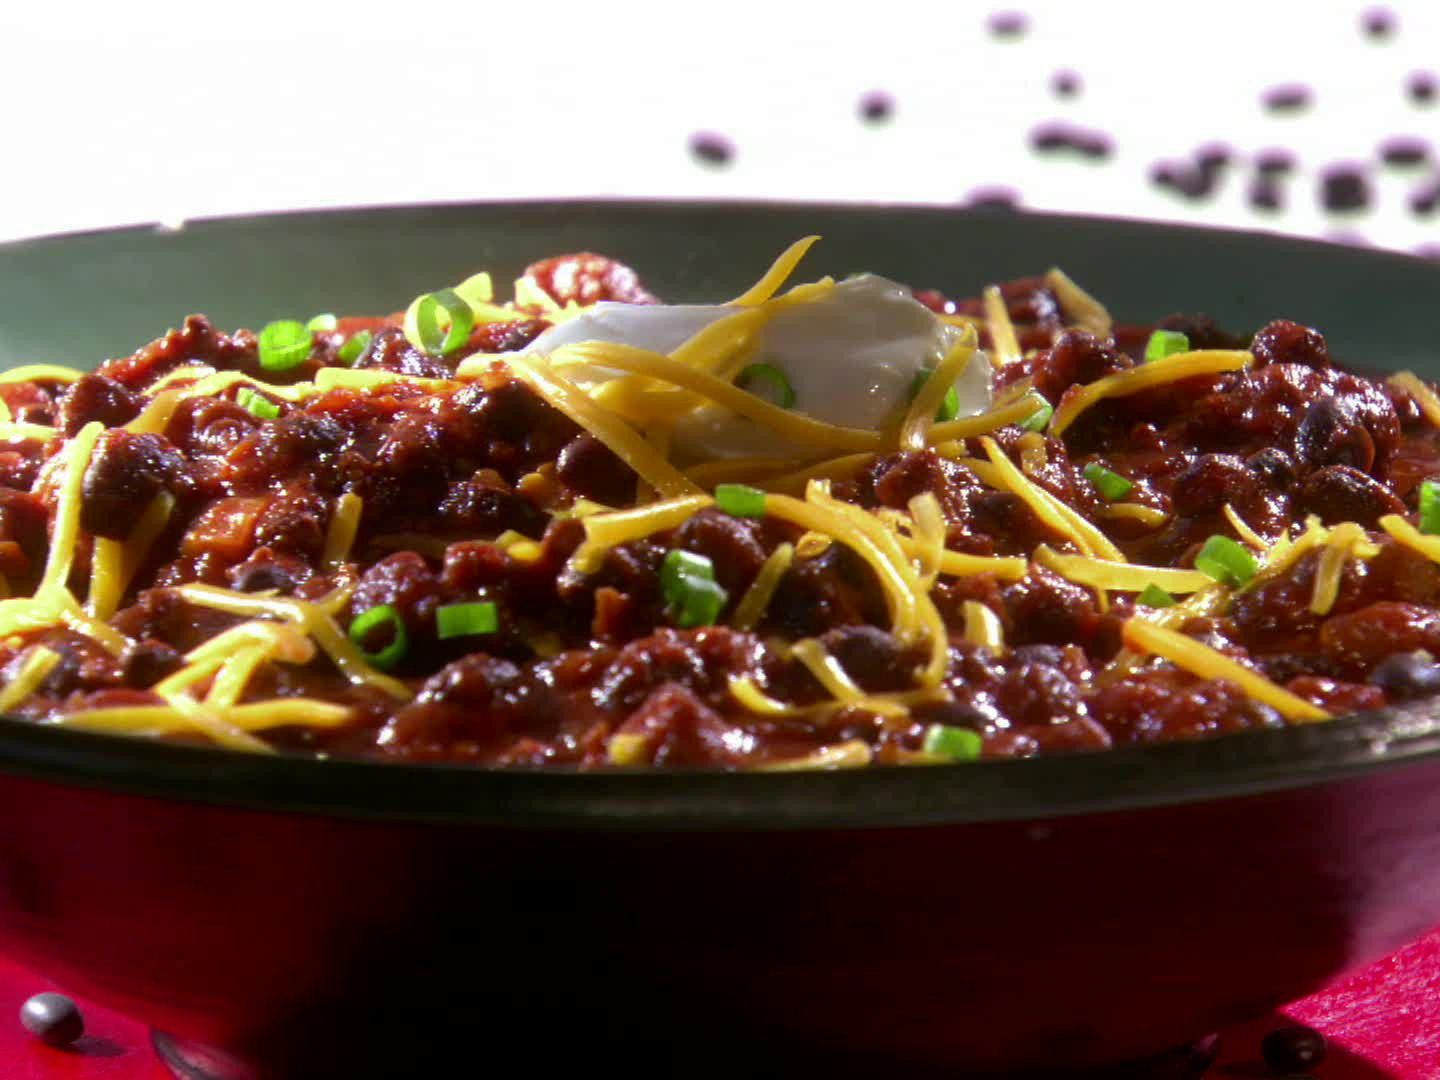 Game day chili recipe chili recipes arabian food and gaming easy forumfinder Image collections